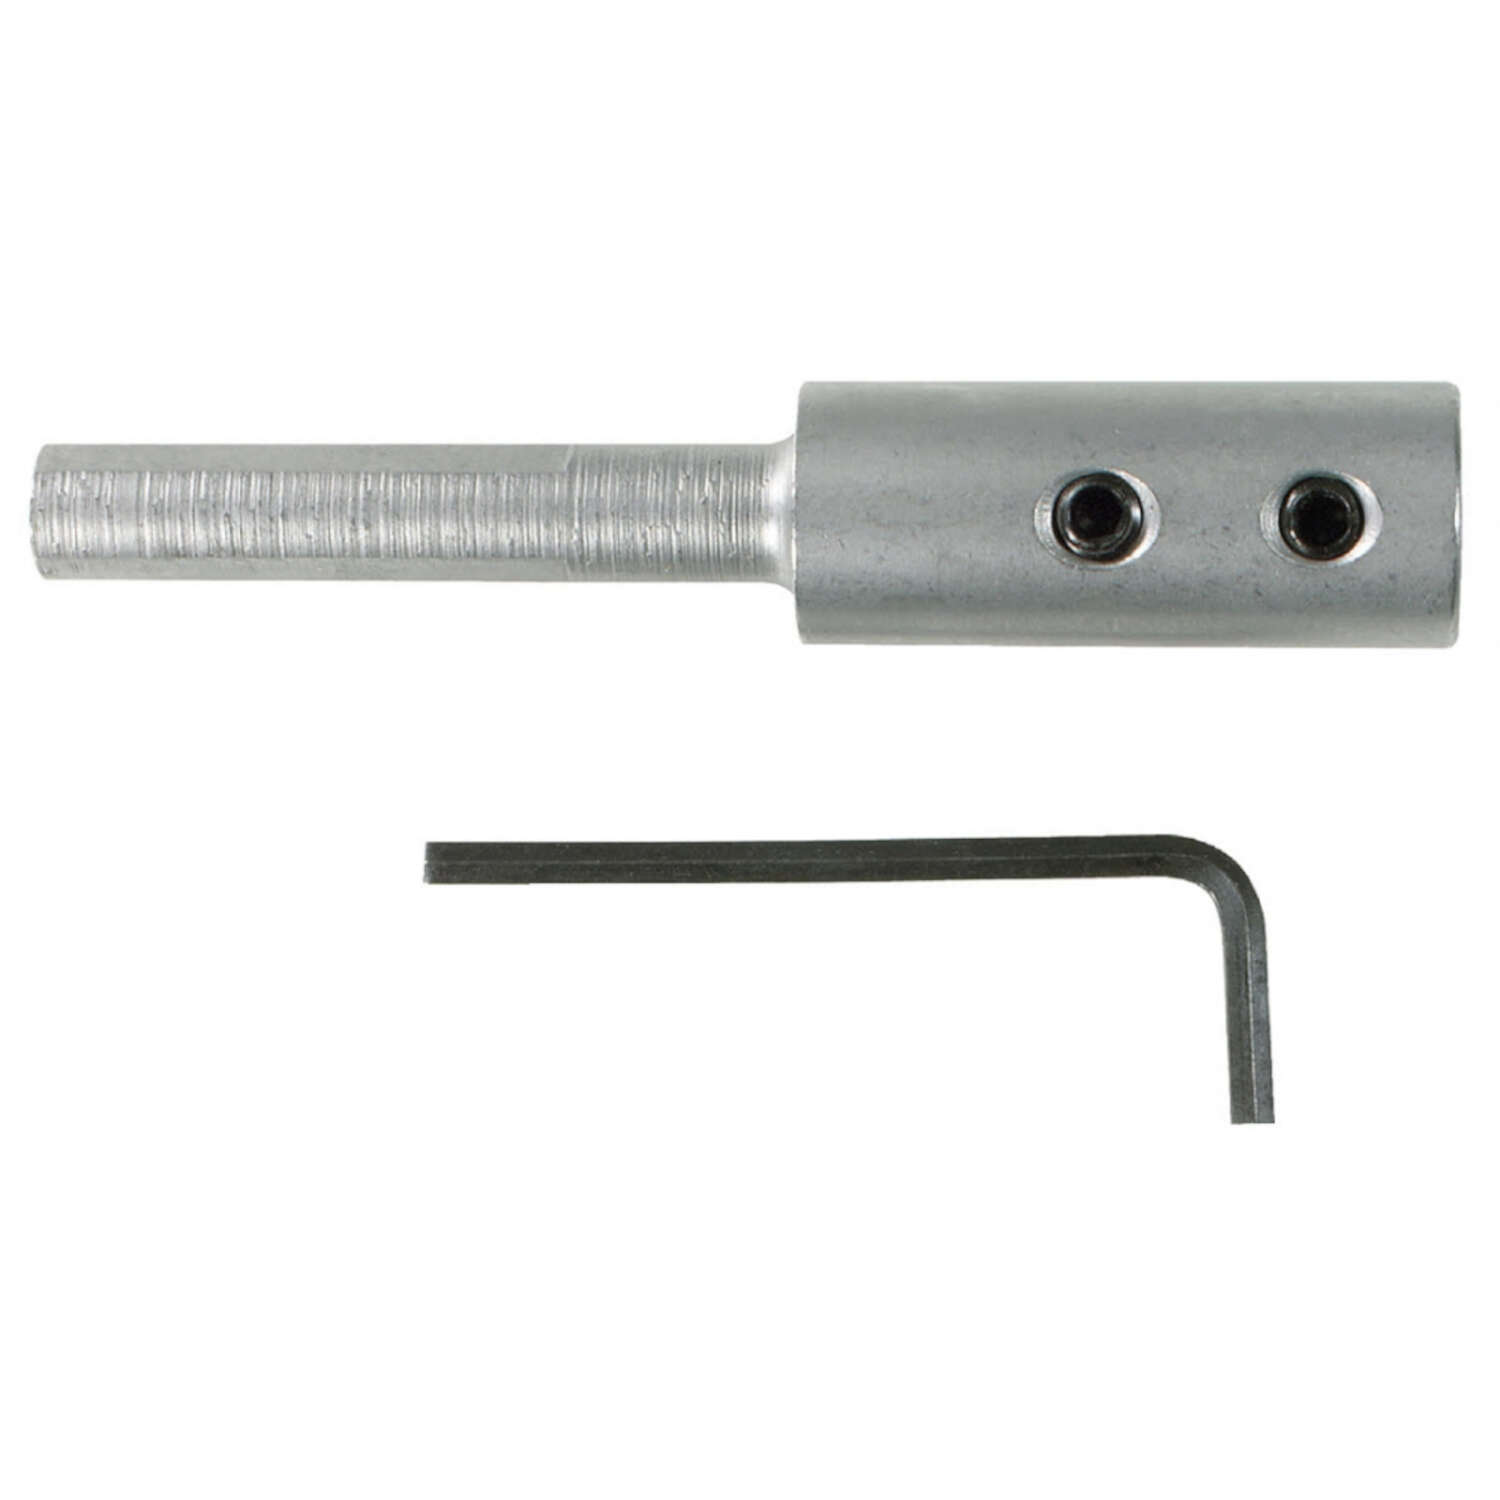 Irwin 4 in. Steel Forstner Bit Extension 3/8 in. Round Shank 1 pc.